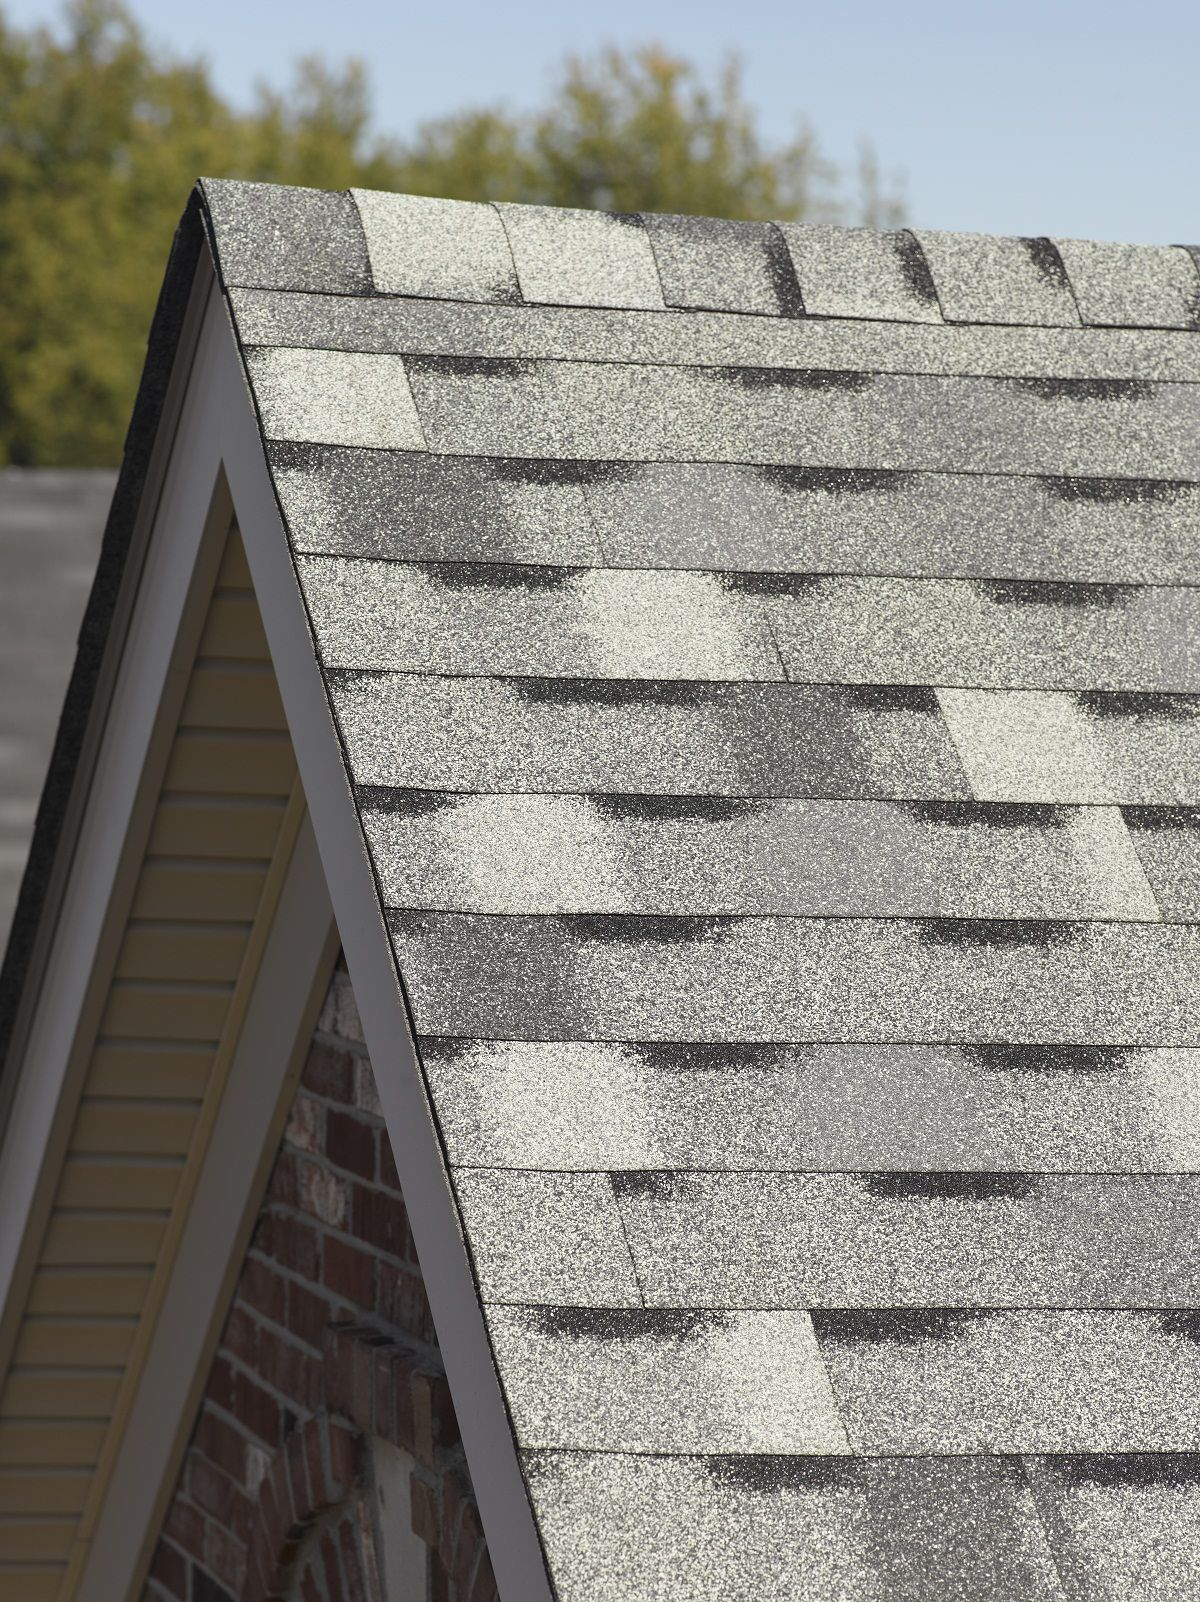 Certainteed Patriot Shingles In Graystone Roofing Shingles Roofing Roofing Diy Certainteed